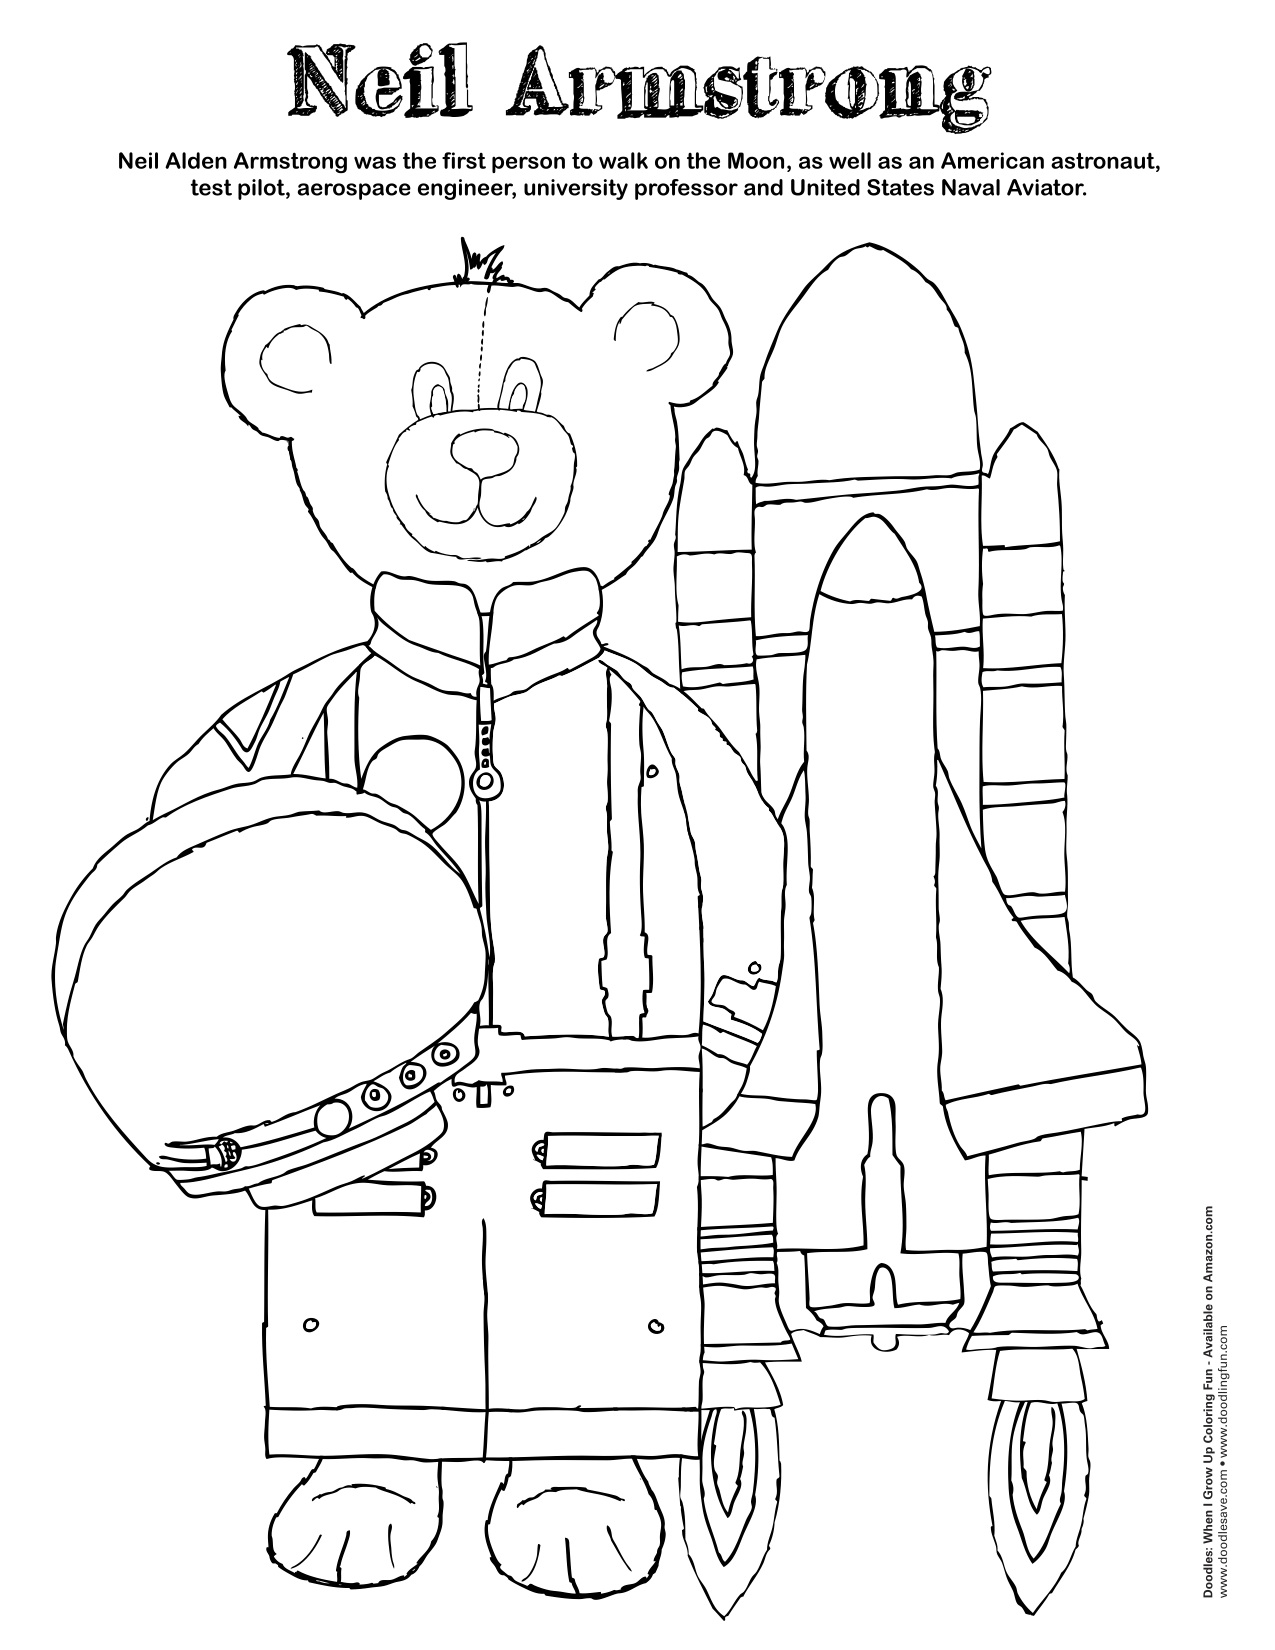 Neil Armstrong Costume Printables - Pics about space